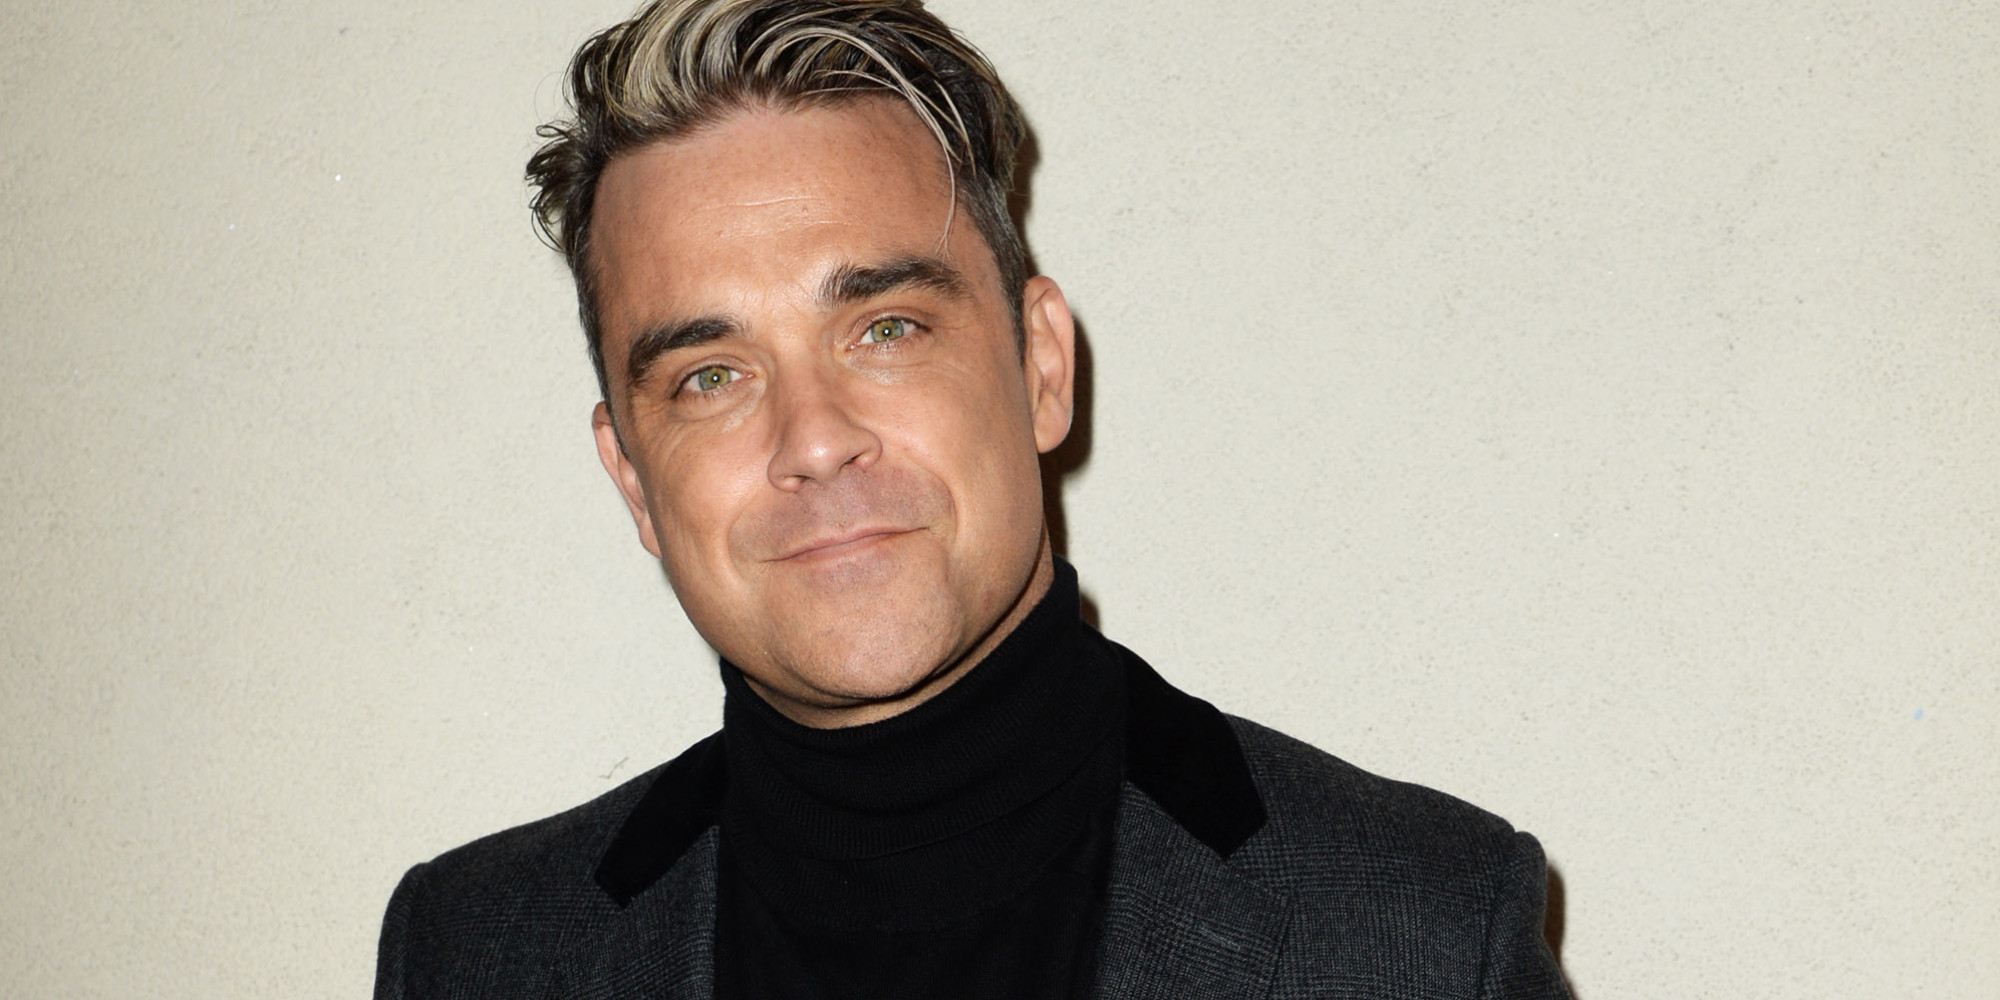 Celebrities who spoke openly about the battle with bipolarity Robbie Williams